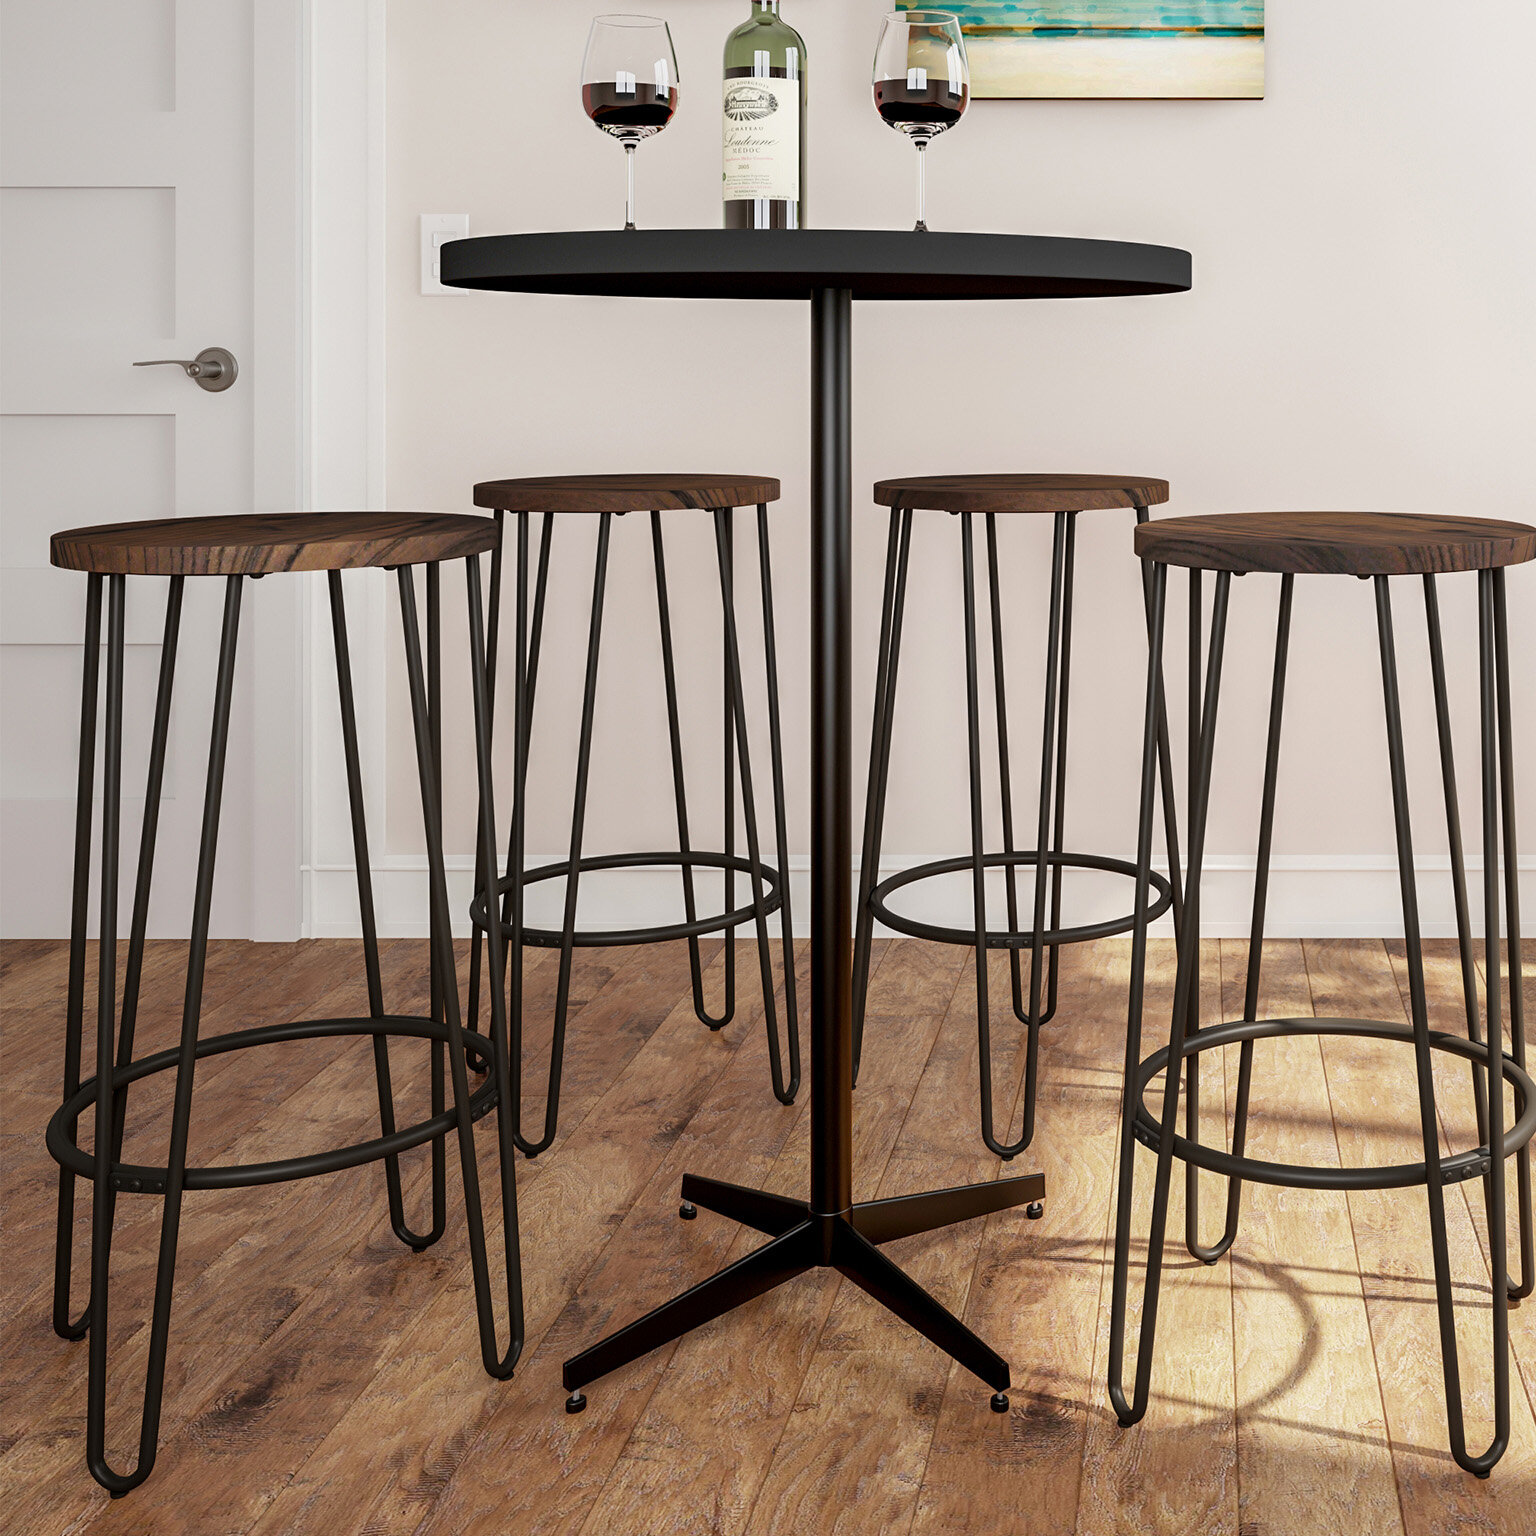 Cool Cadell Hairpin 30 Bar Stool Gmtry Best Dining Table And Chair Ideas Images Gmtryco